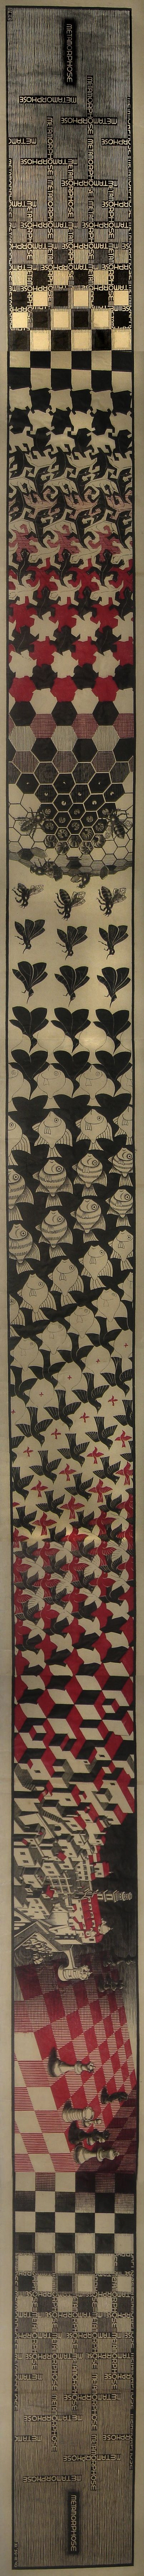 http://UpCycle.CLub Forever Elusive Metamorphosis II by M.C. Escher @upcycleclub https://www.pinterest.com/upcycleclub/upcycle-art-life-historyproject/